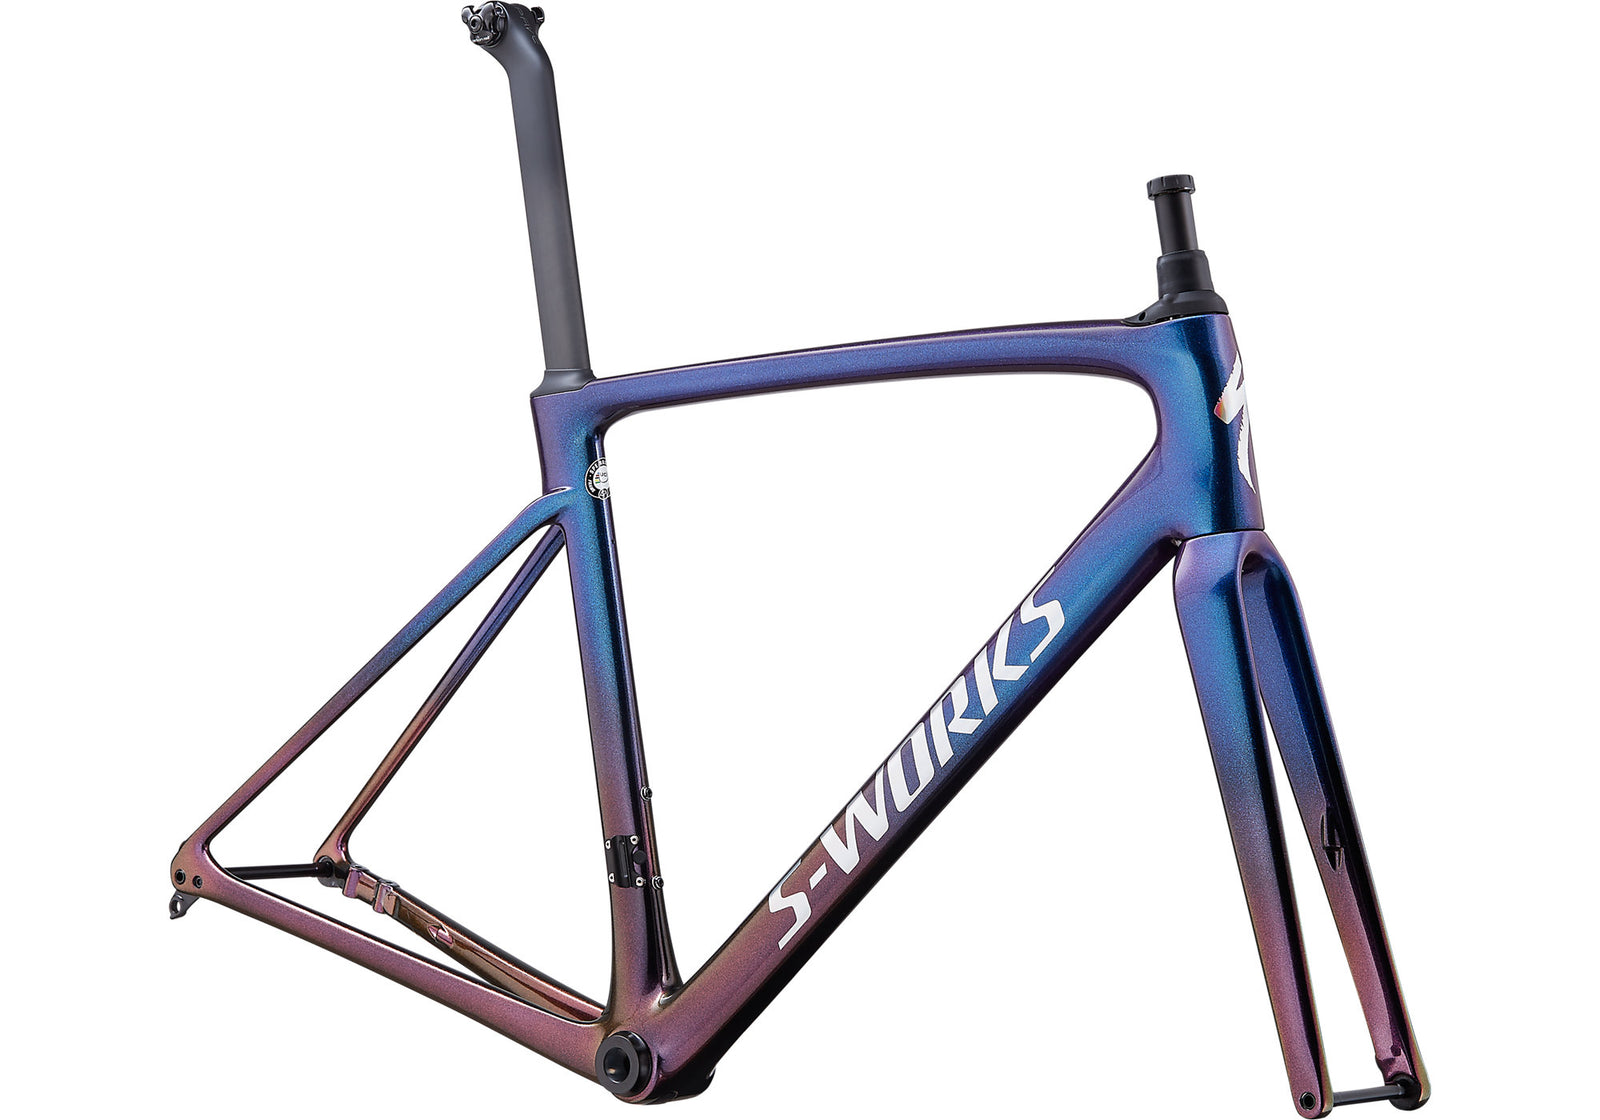 All-New S-Works Roubaix Frameset